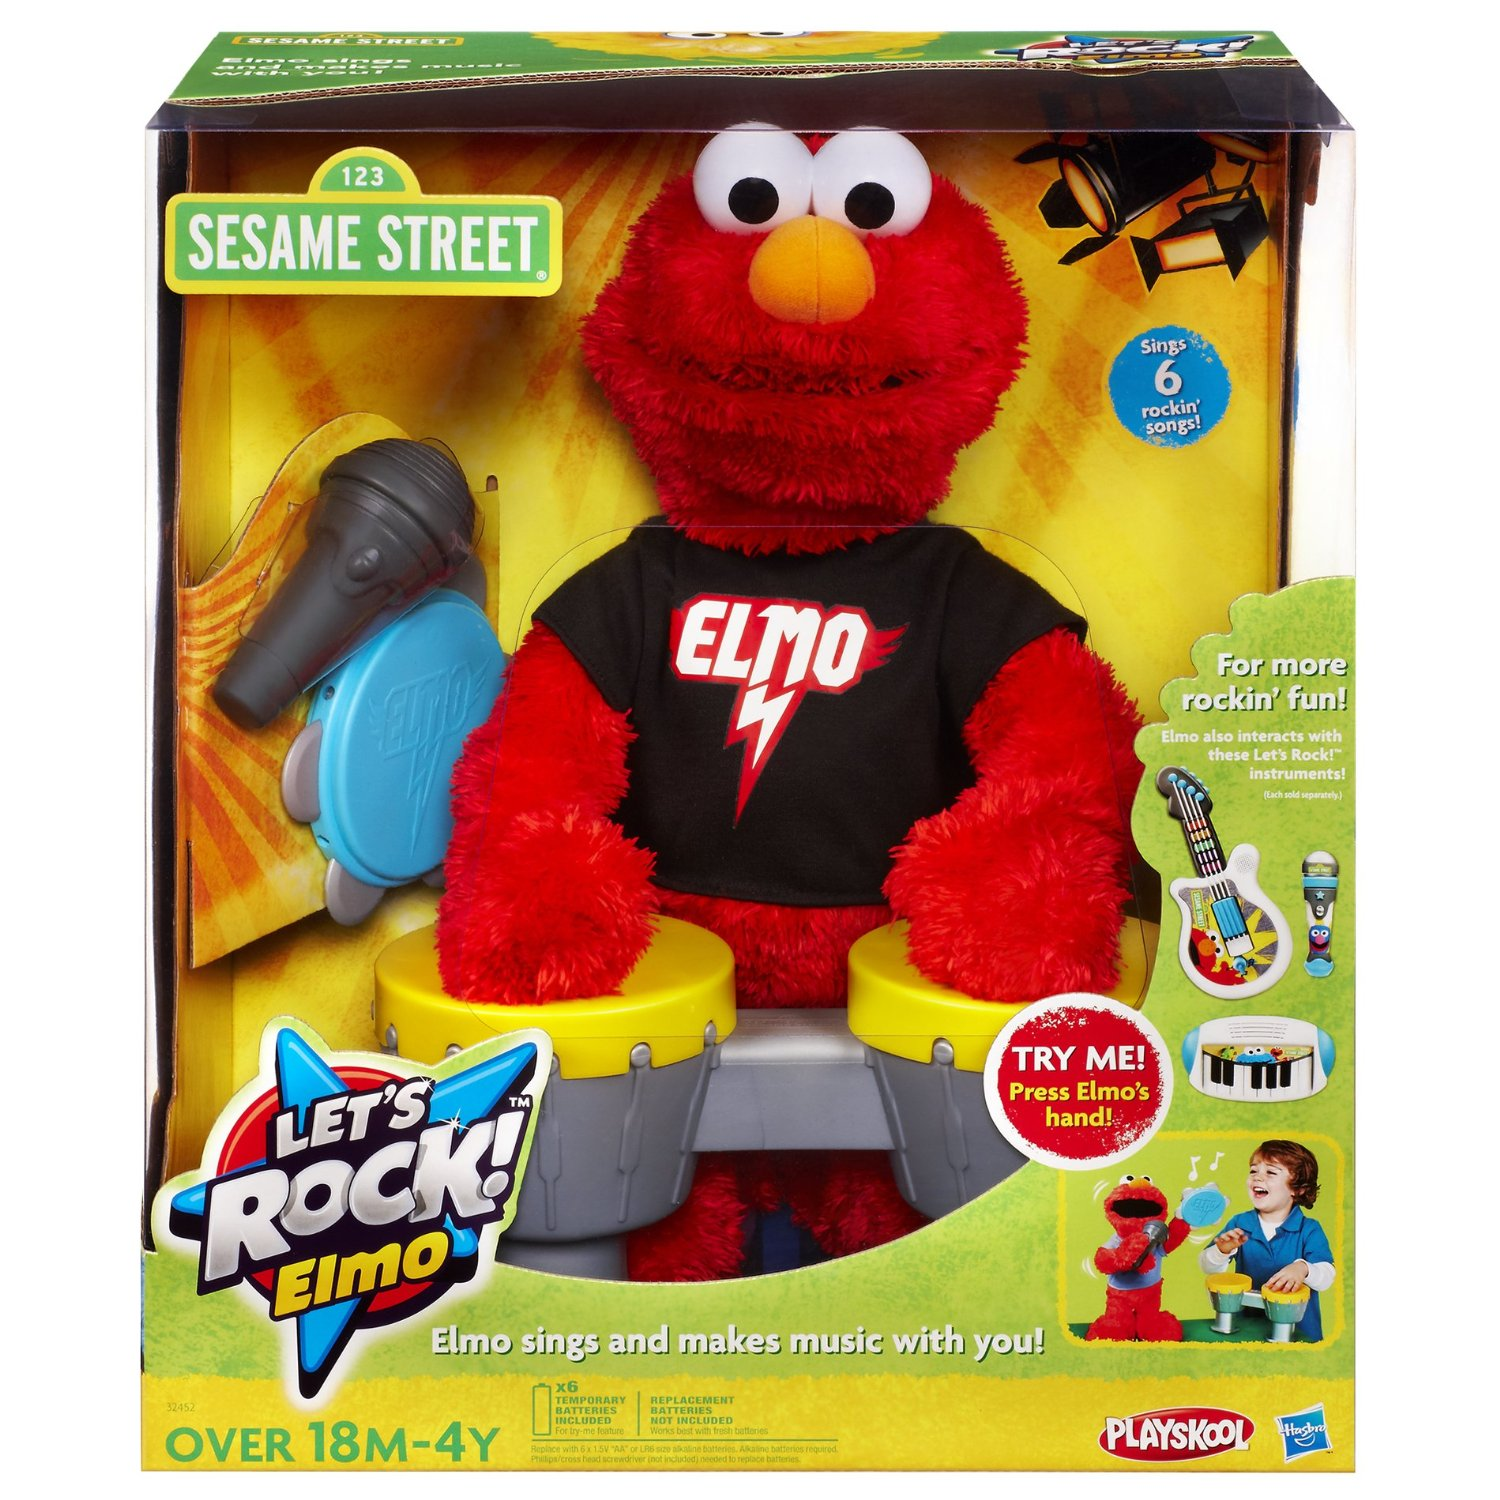 Introducing... The Elmo Toy of 2011 and Beyond!